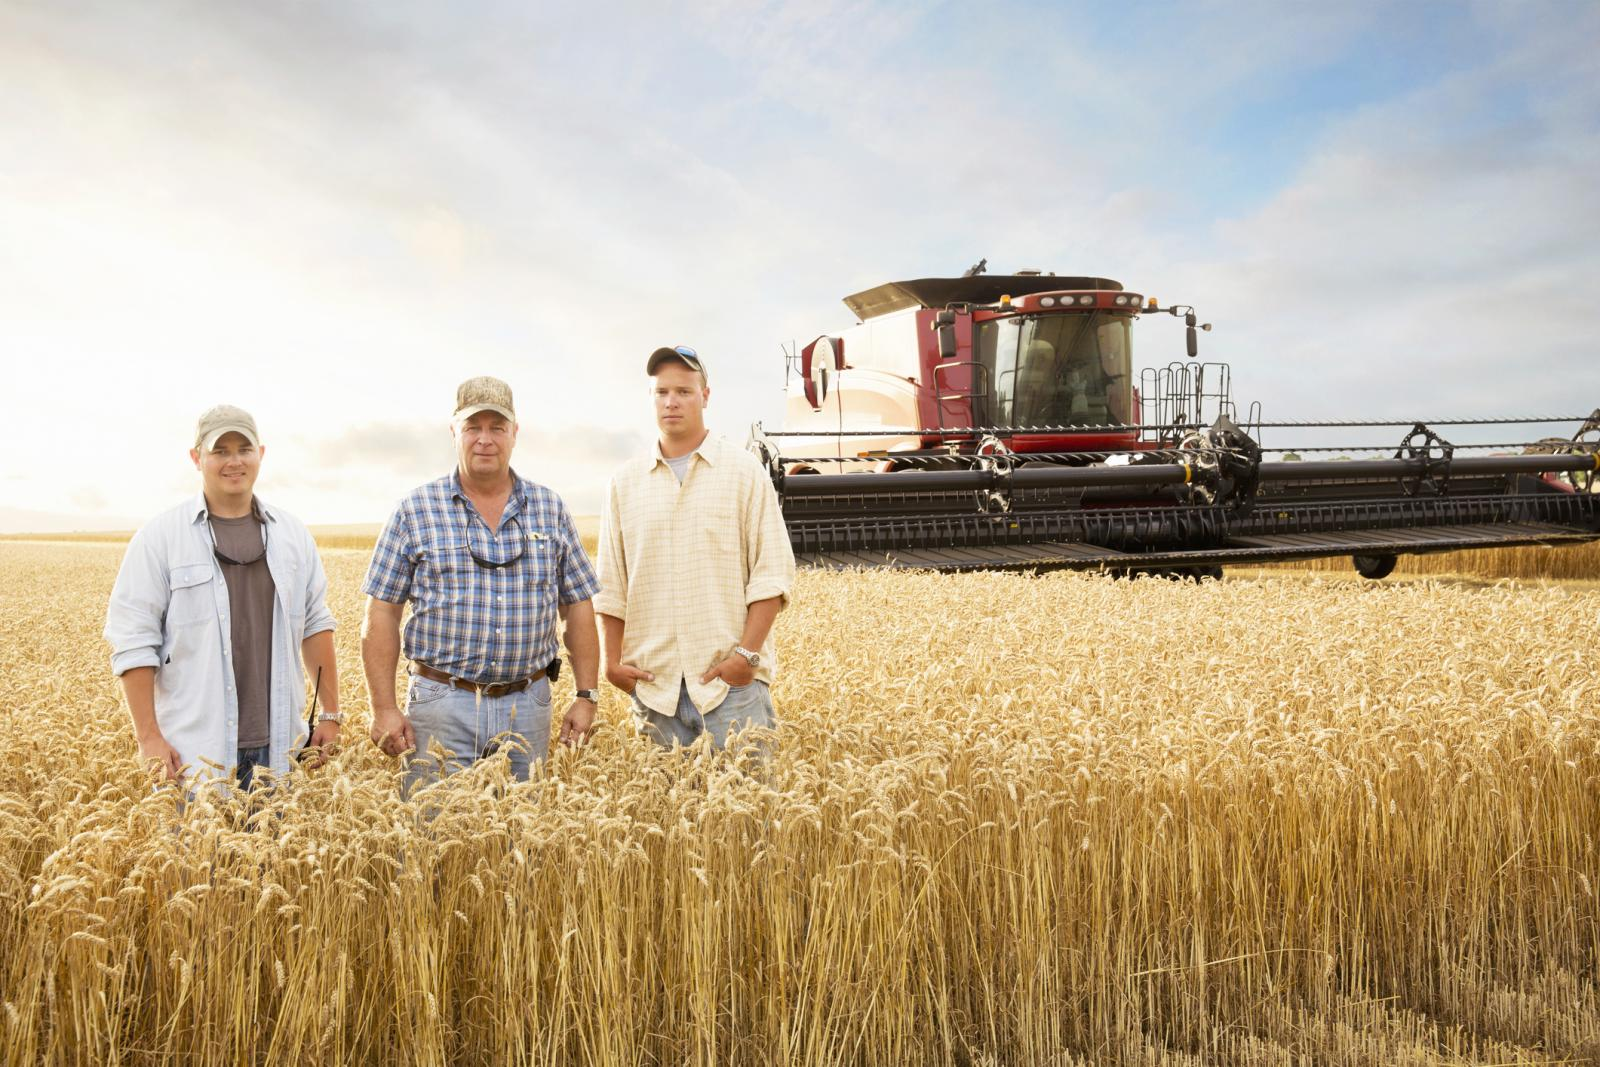 Two generations of farmers in wheat field